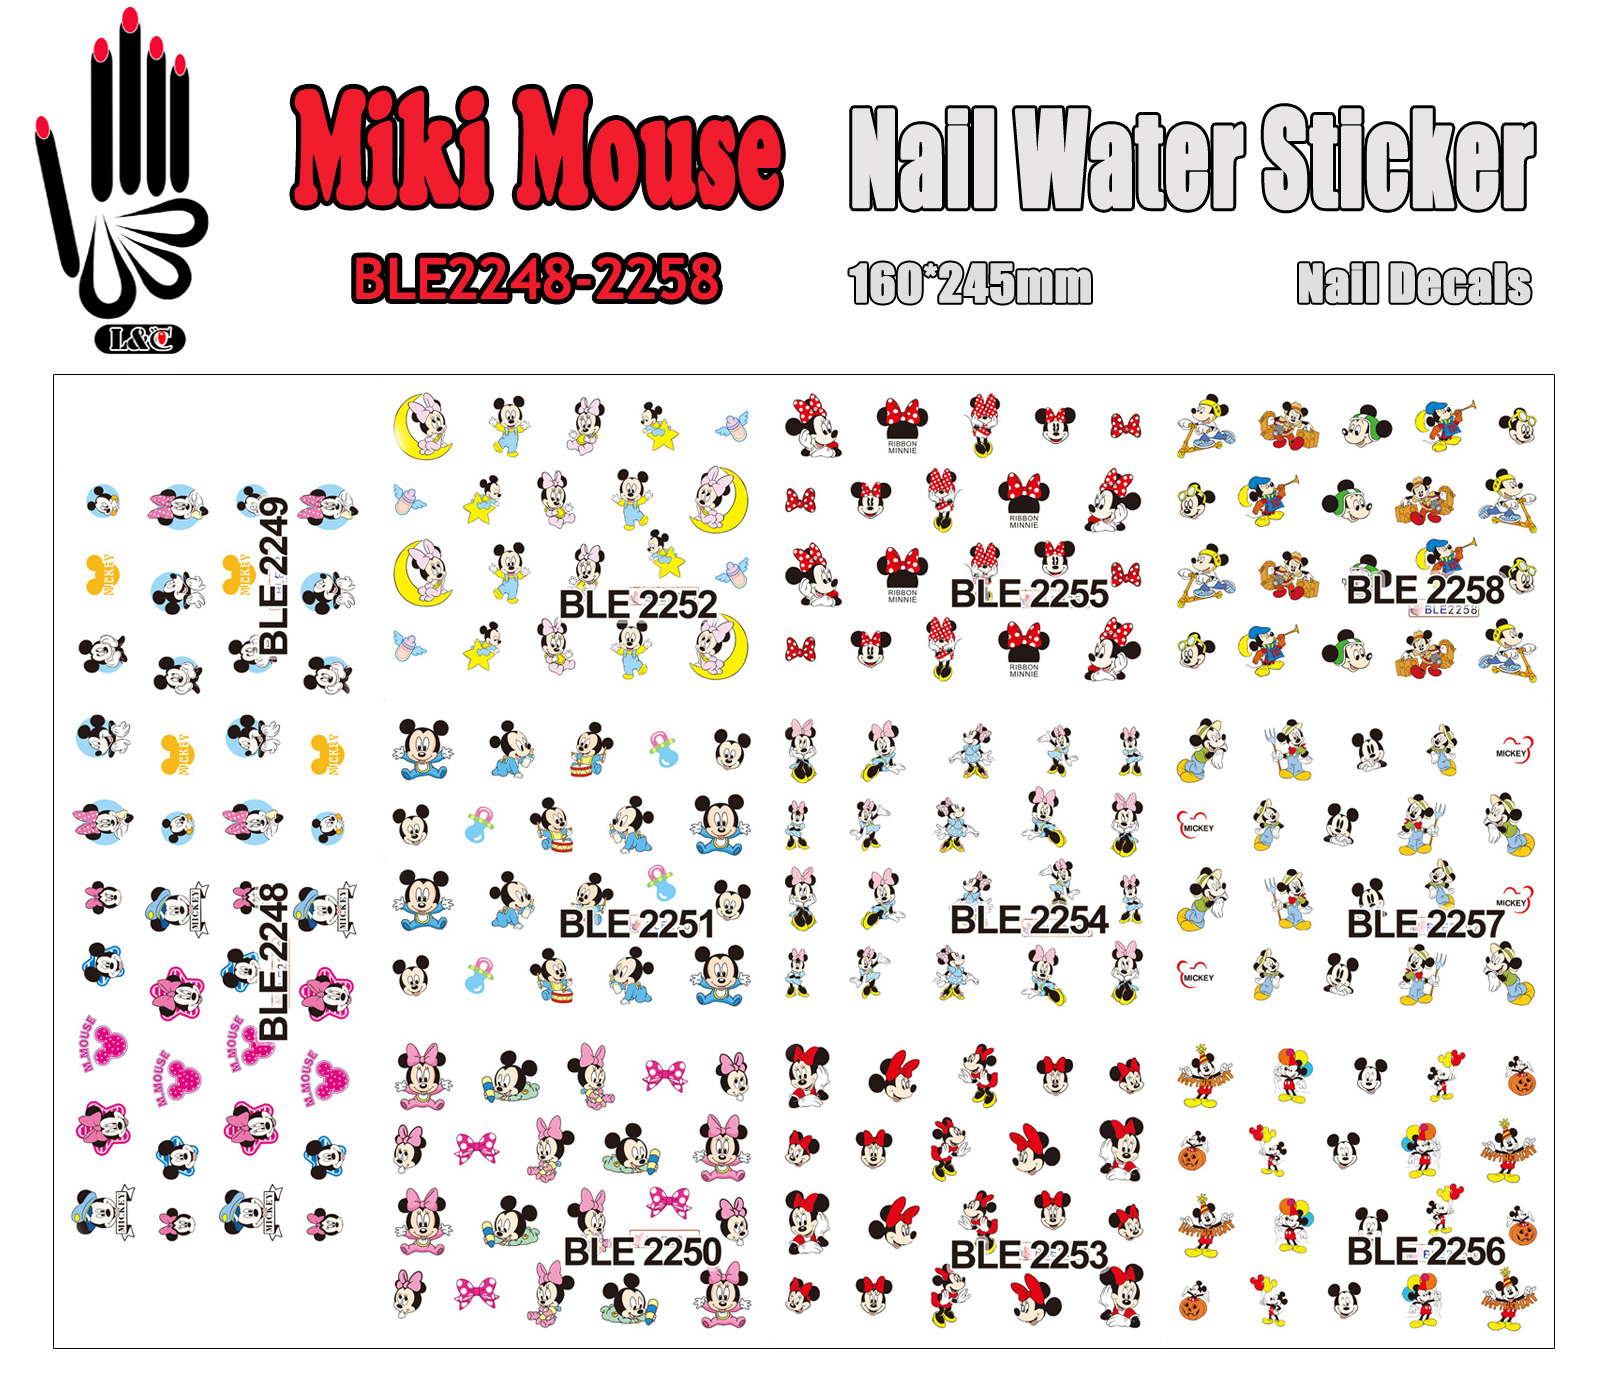 11 Sheets/Lot Nail Art BLE2248-2258 Cartoon Mouse Nail Art Water Transfer Sticker for Nail Wraps(11 DESIGNS IN 1)<br><br>Aliexpress